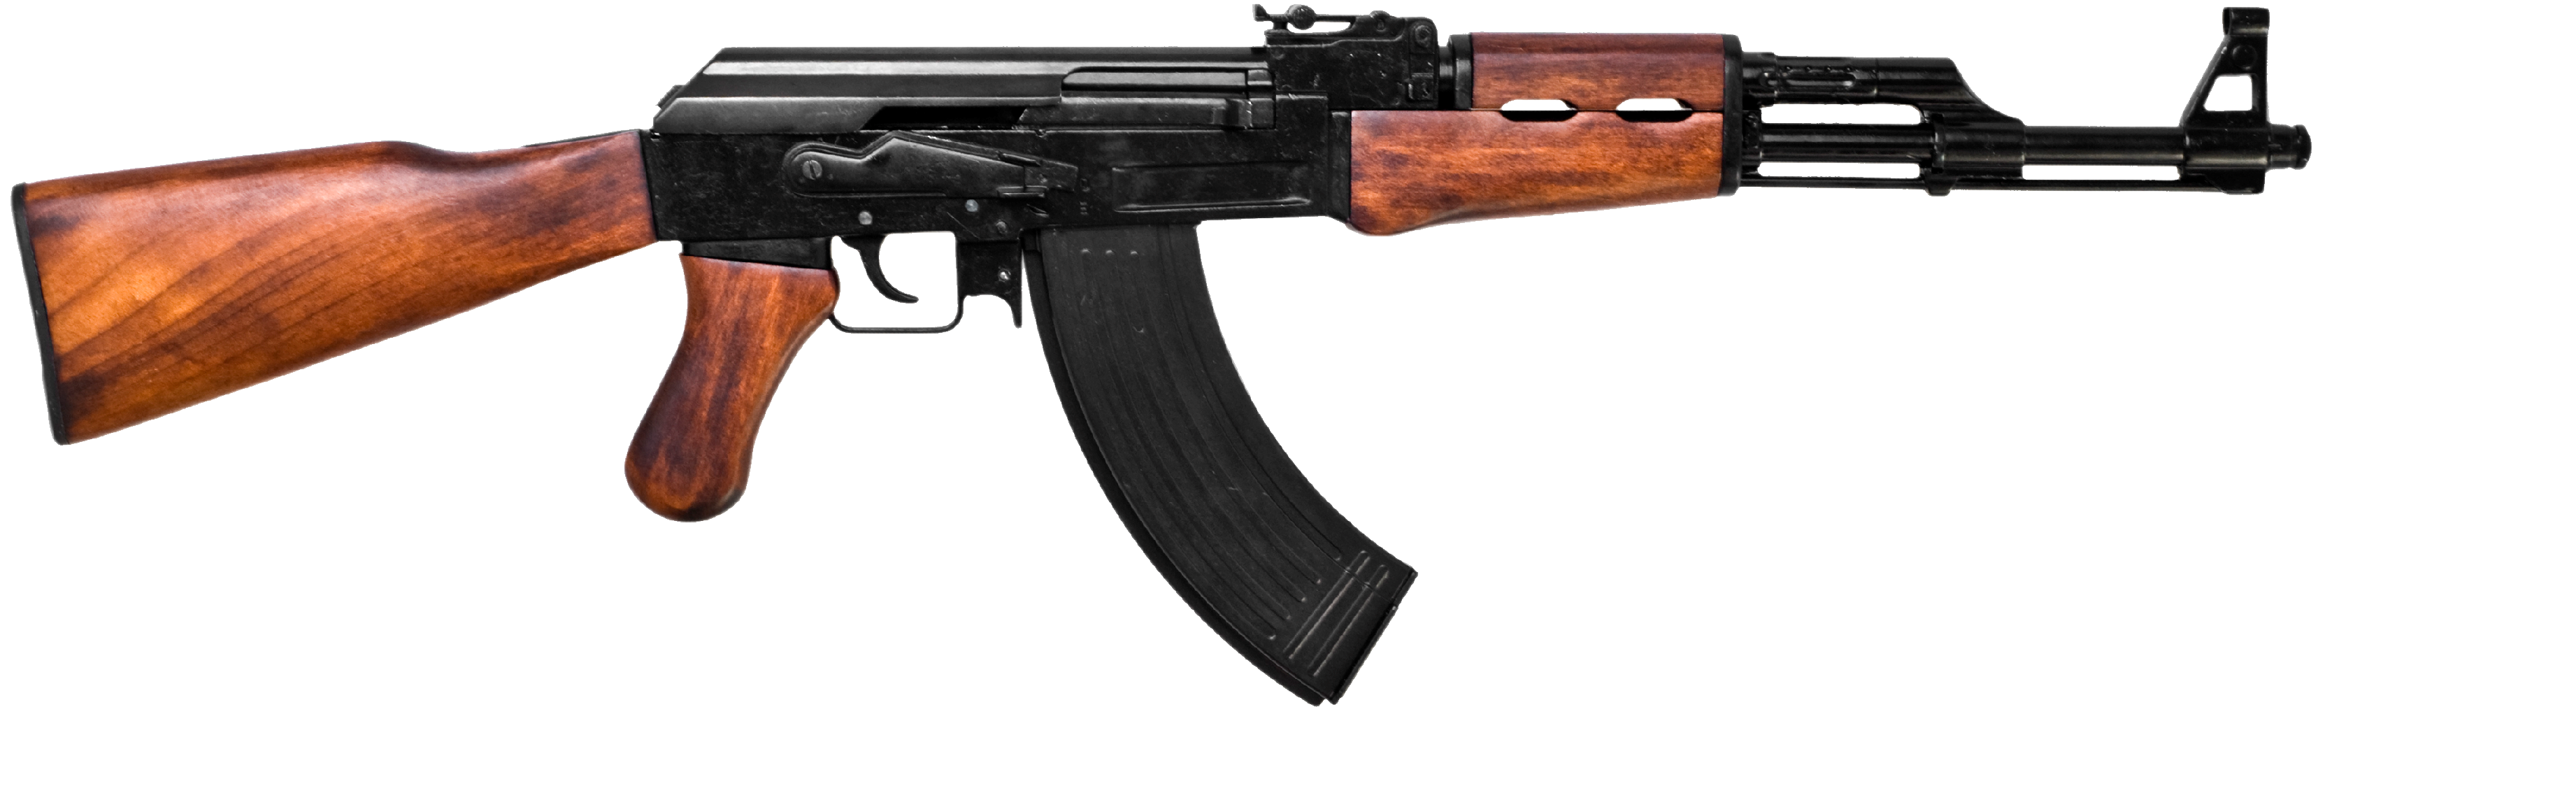 Ak47 png csgo. Assault rifle clipart ak